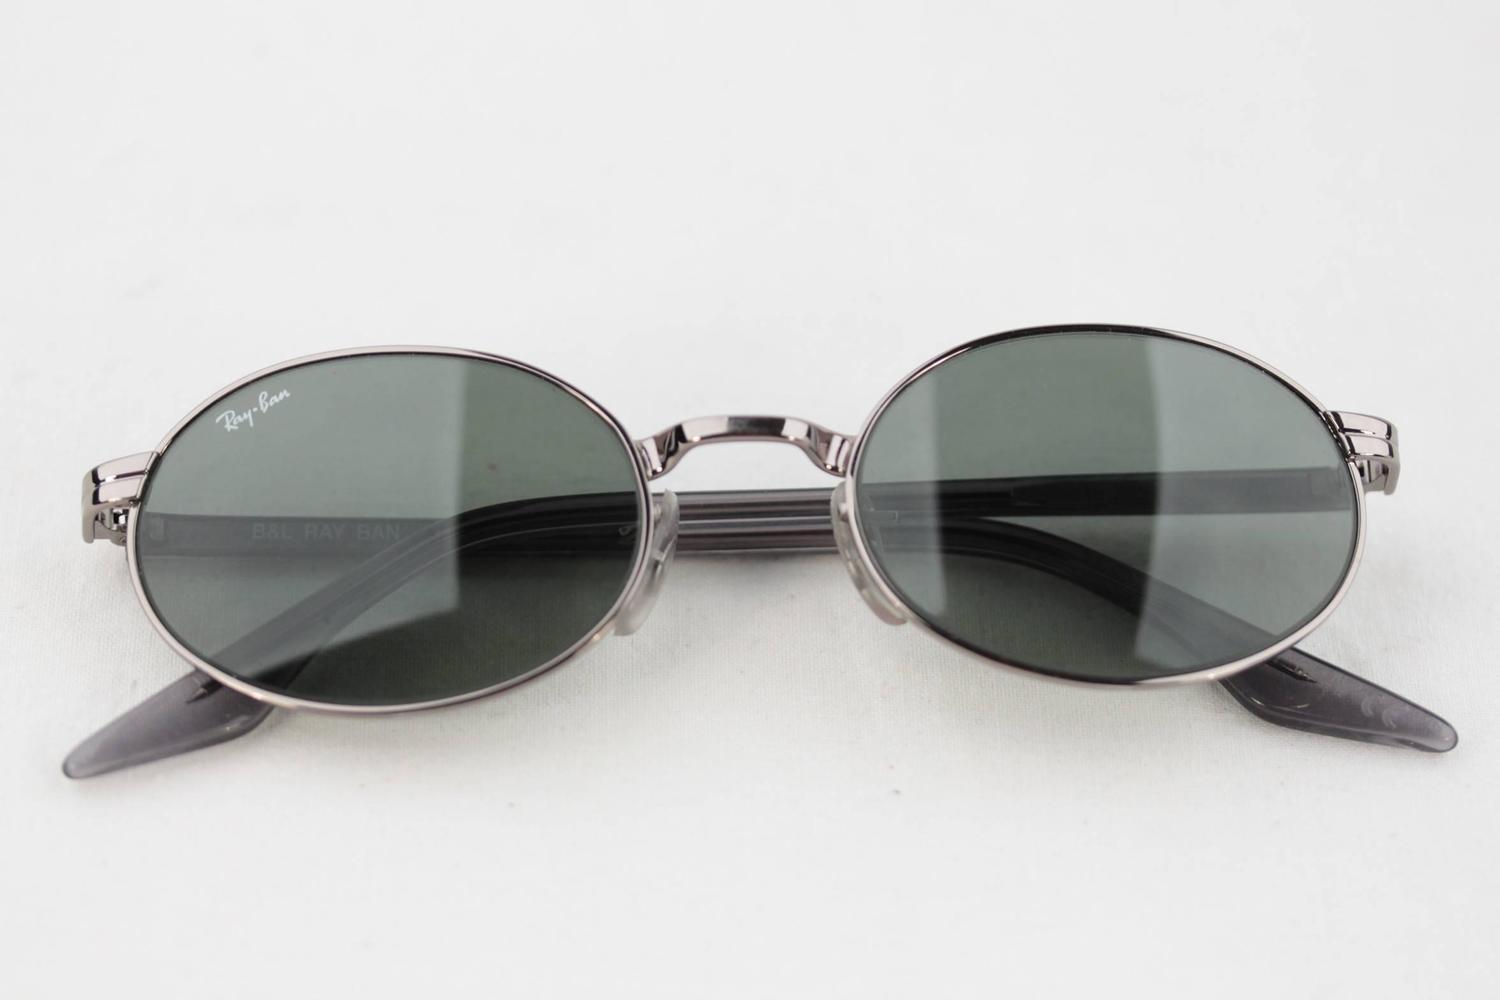 ray ban oval sunglasses for sale